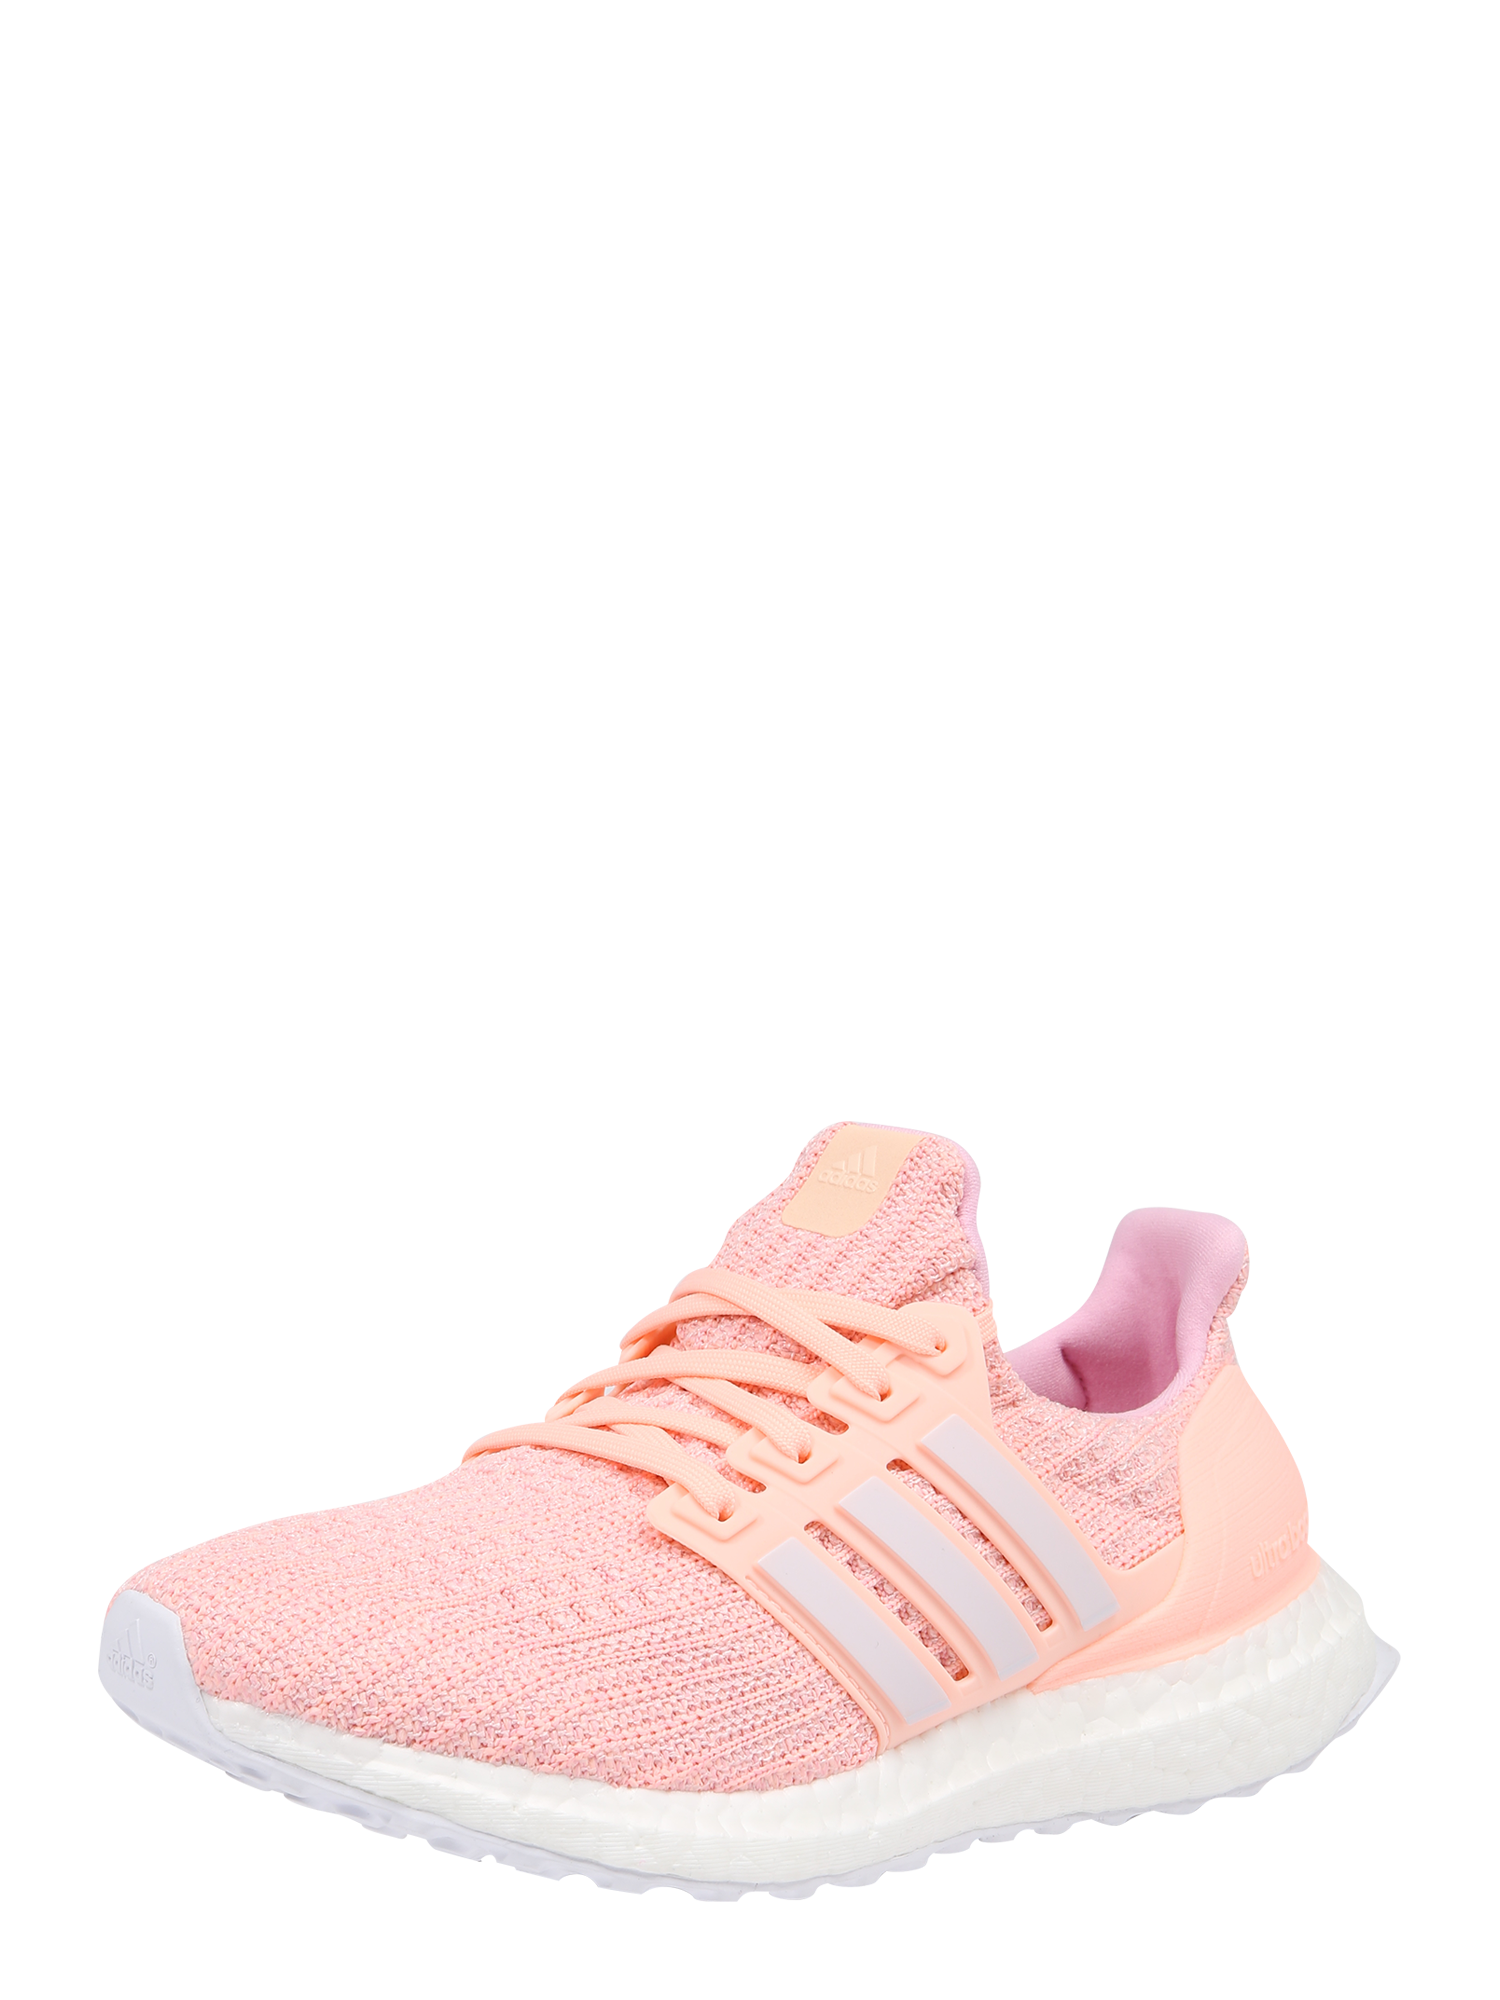 ADIDAS PERFORMANCE Laufschuhe 'UltraBoost' in rosa